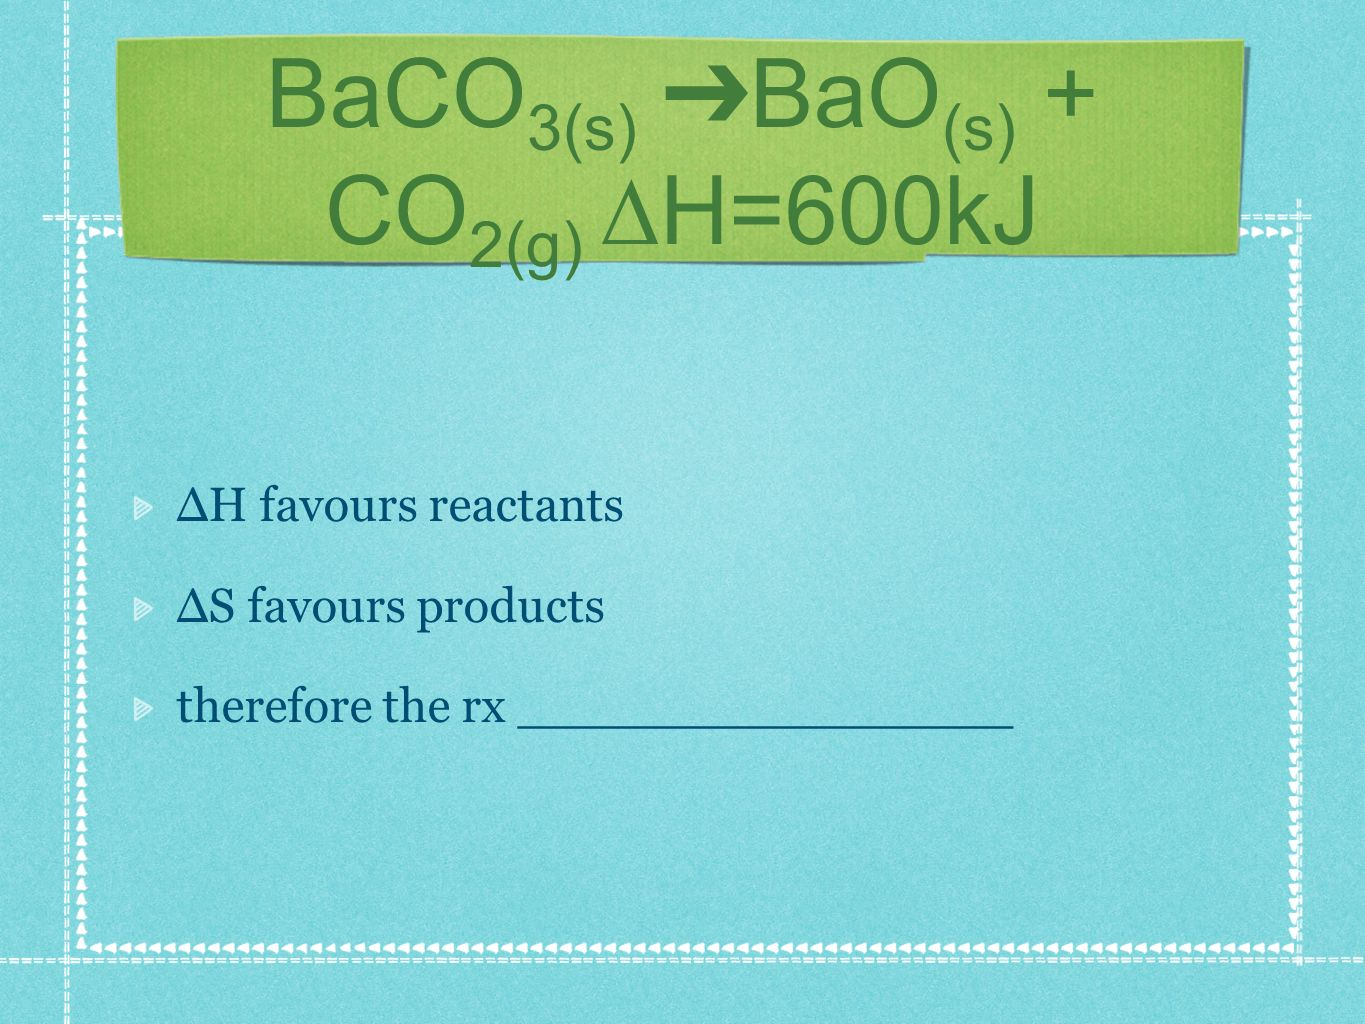 BaCO 3(s) BaO (s) + CO 2(g) H=600kJ H favours reactants S favours products therefore the rx ________________